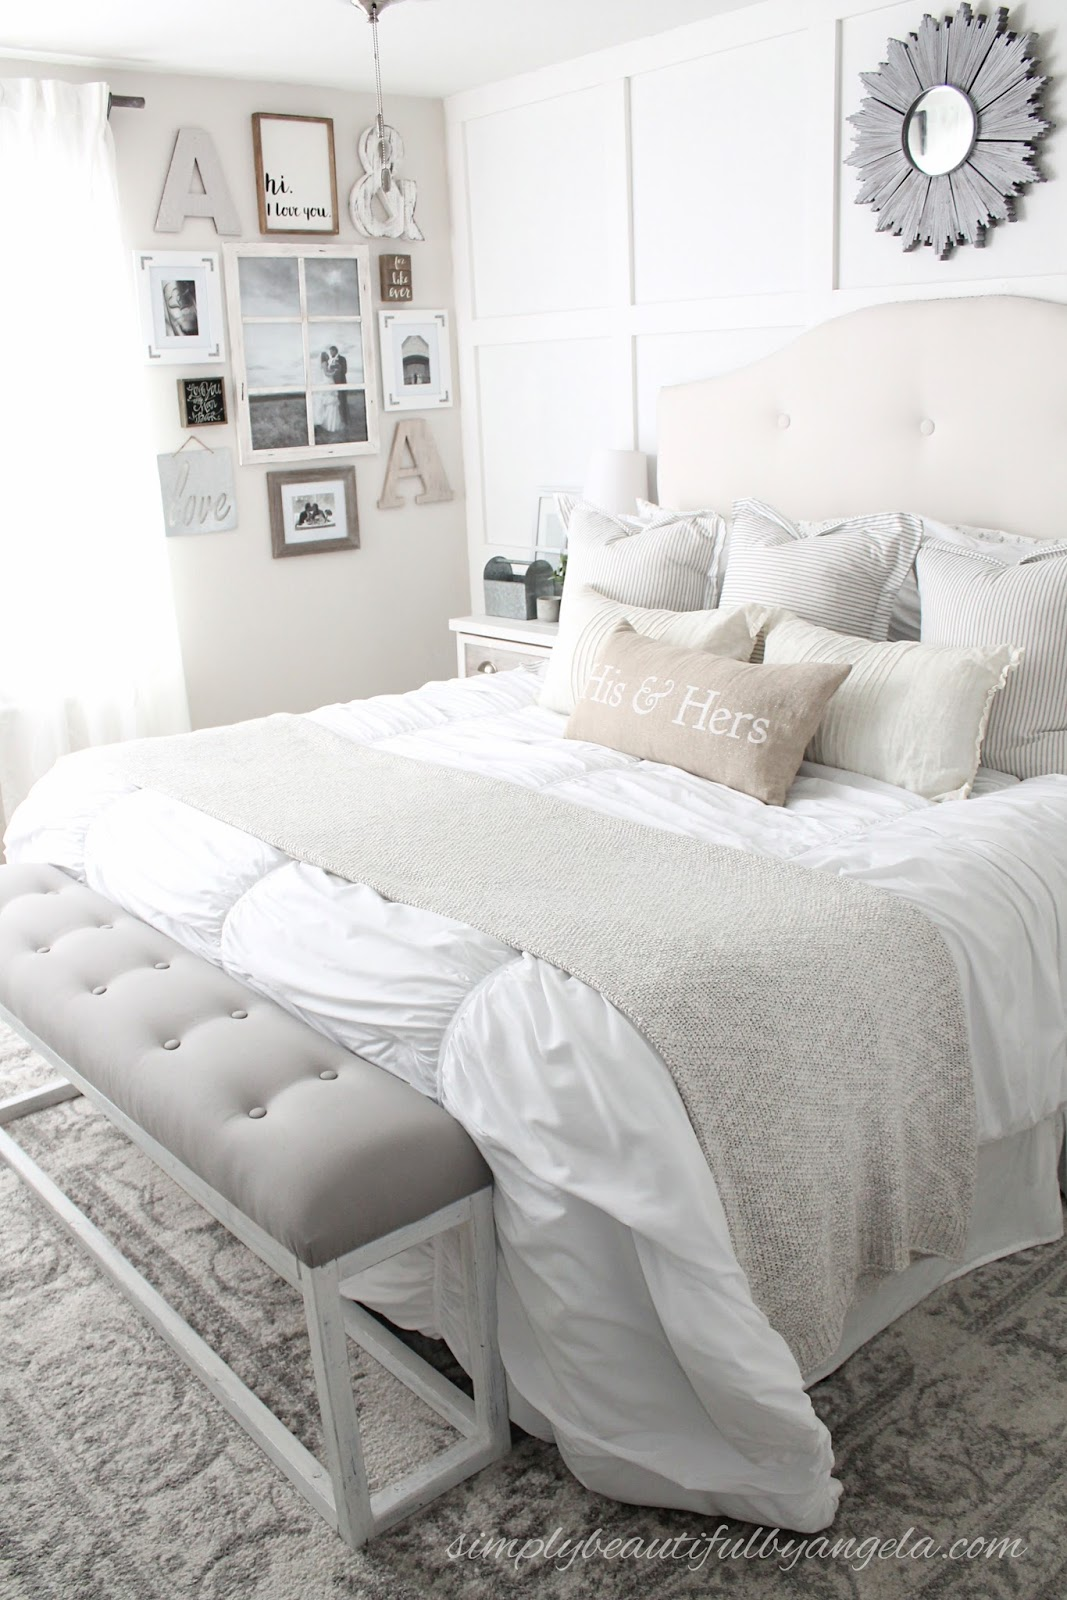 DIY End of Bed Bench via Simply Beautiful by Angela